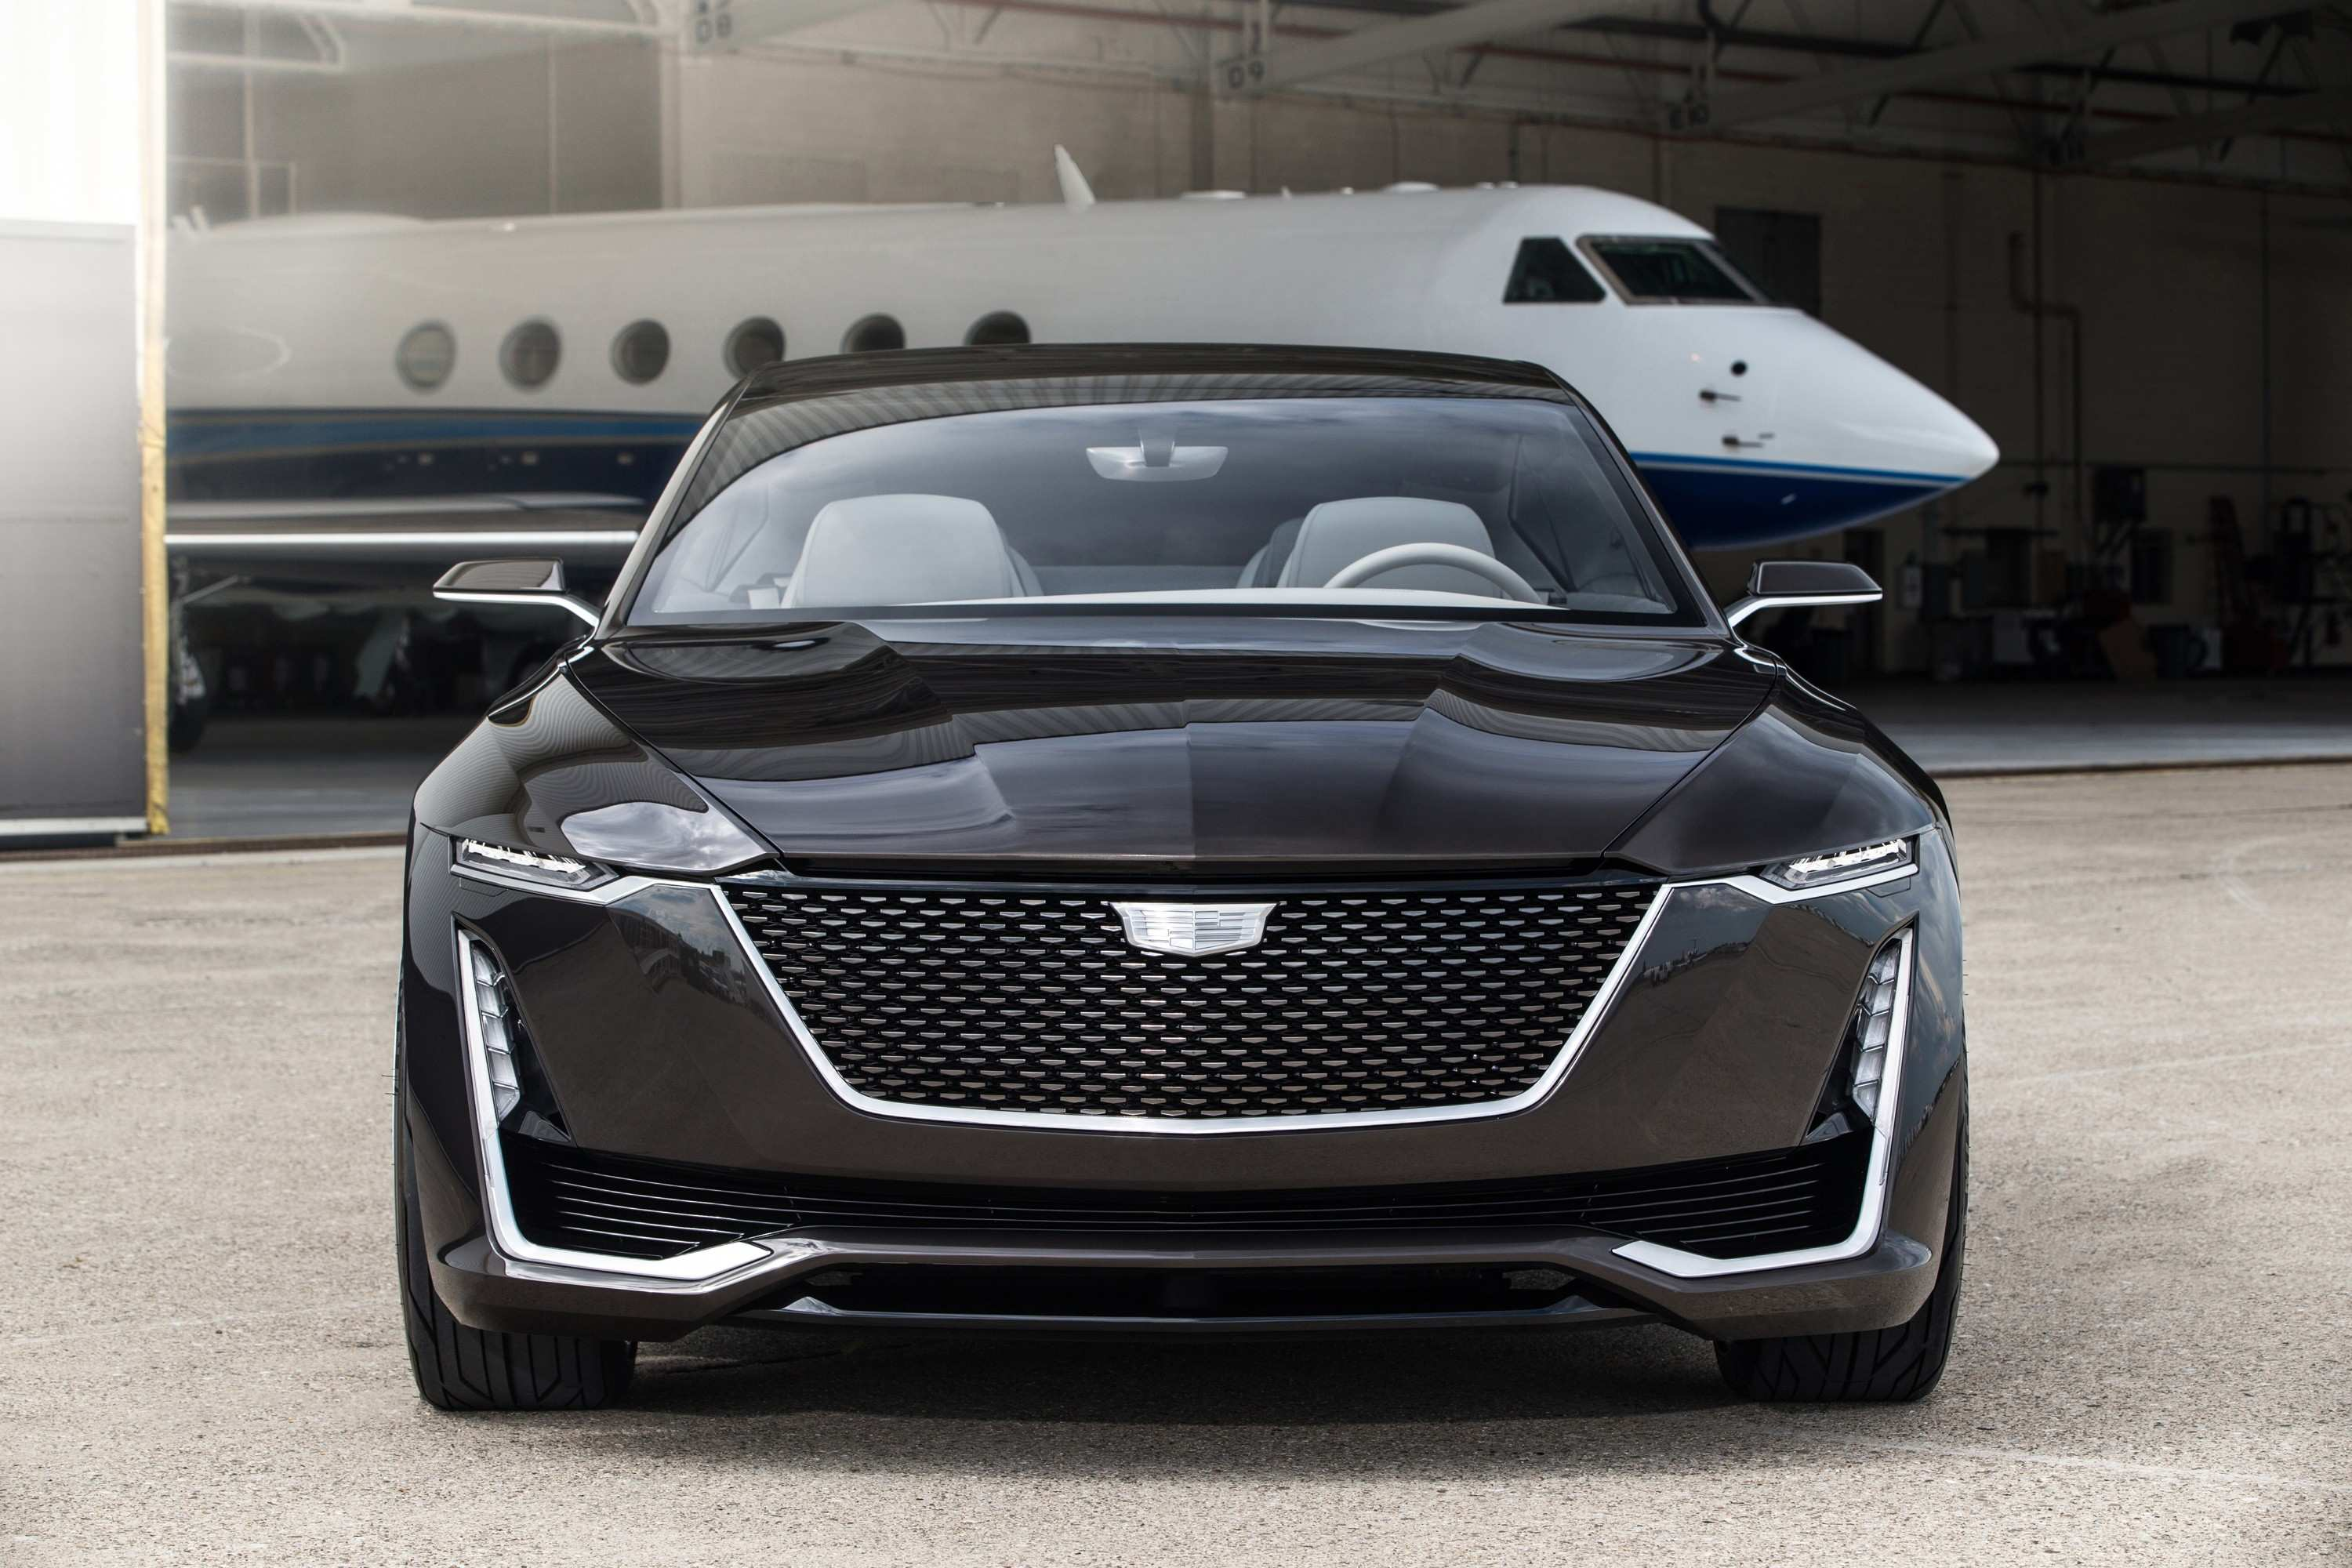 96 New Cadillac Models 2020 Overview